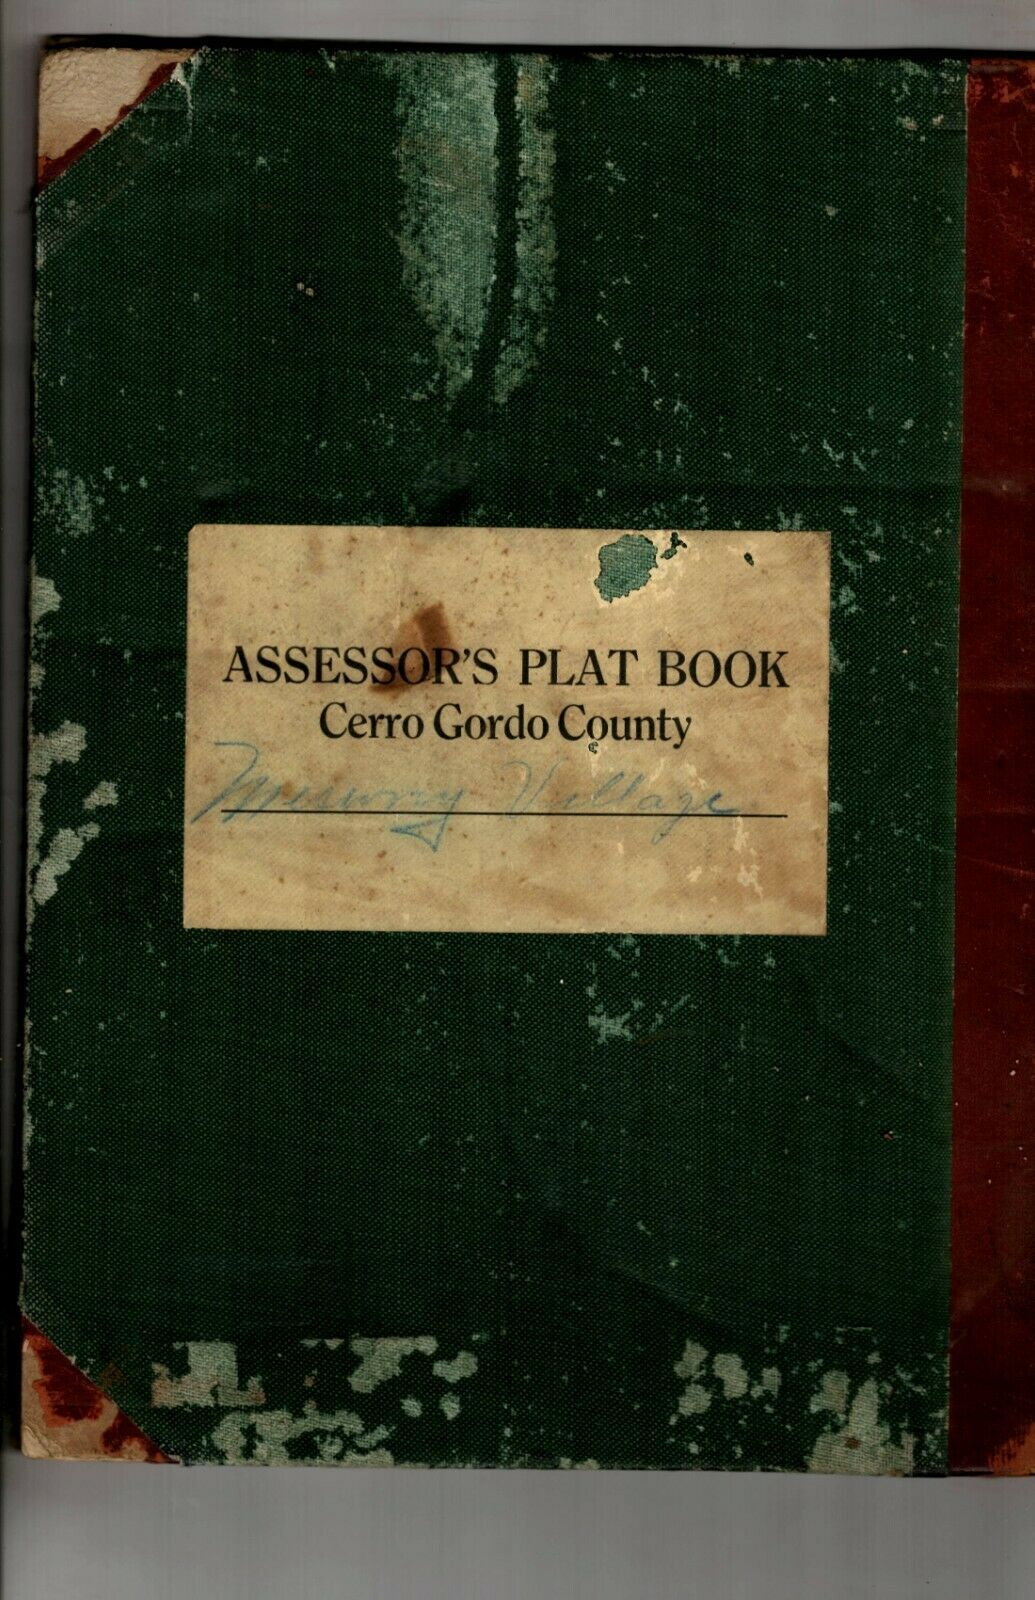 1913 Meservey Village Assessors Plat Book Cerro Gordo County